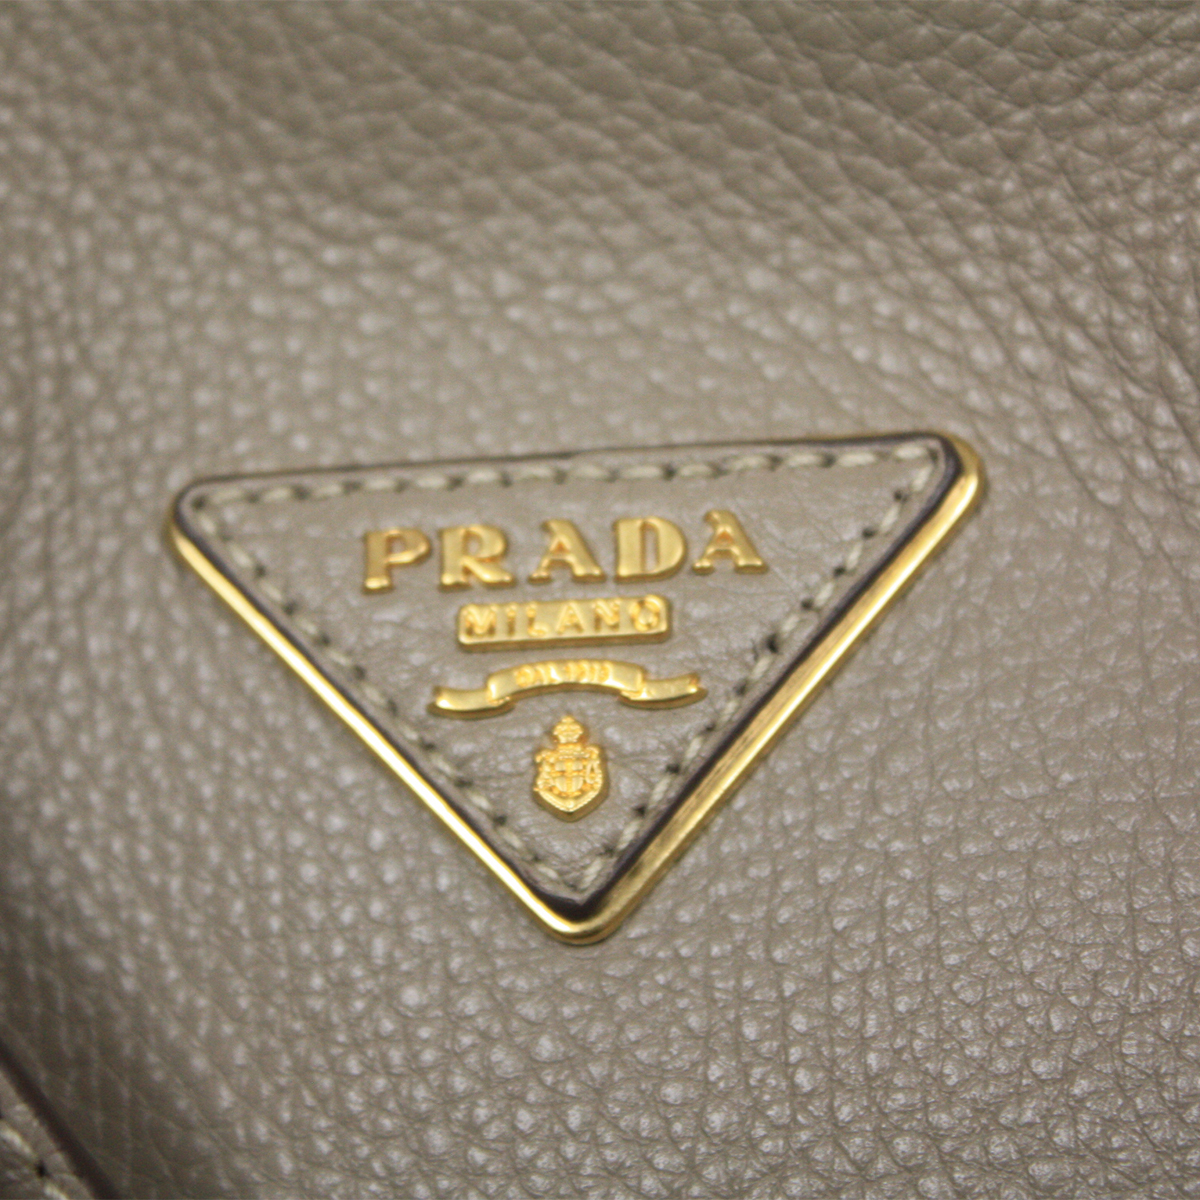 Prada Textured Dove Grey Taupe Beige Leather Shopping Tote Bag ...